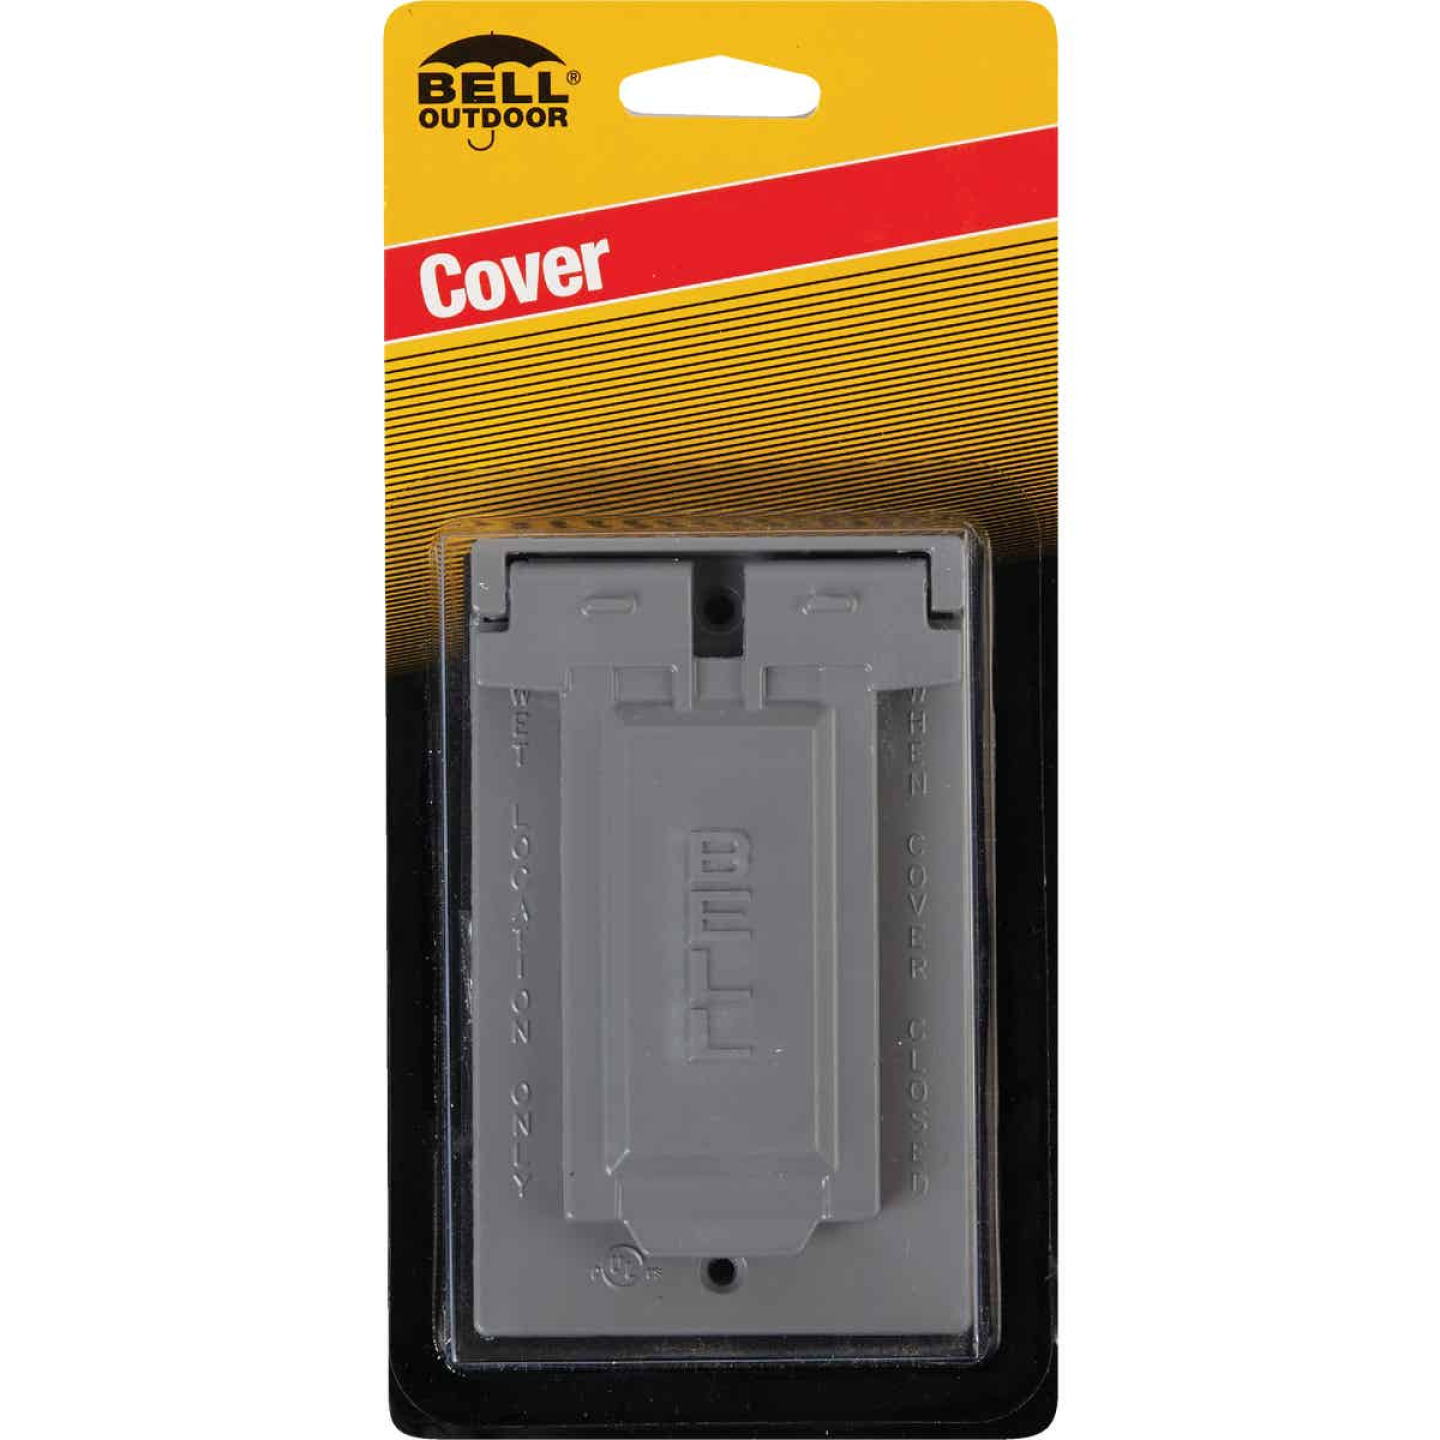 Bell Single Gang Vertical Mount Die-Cast Metal Gray Weatherproof GFCI Outdoor Outlet Cover Image 2